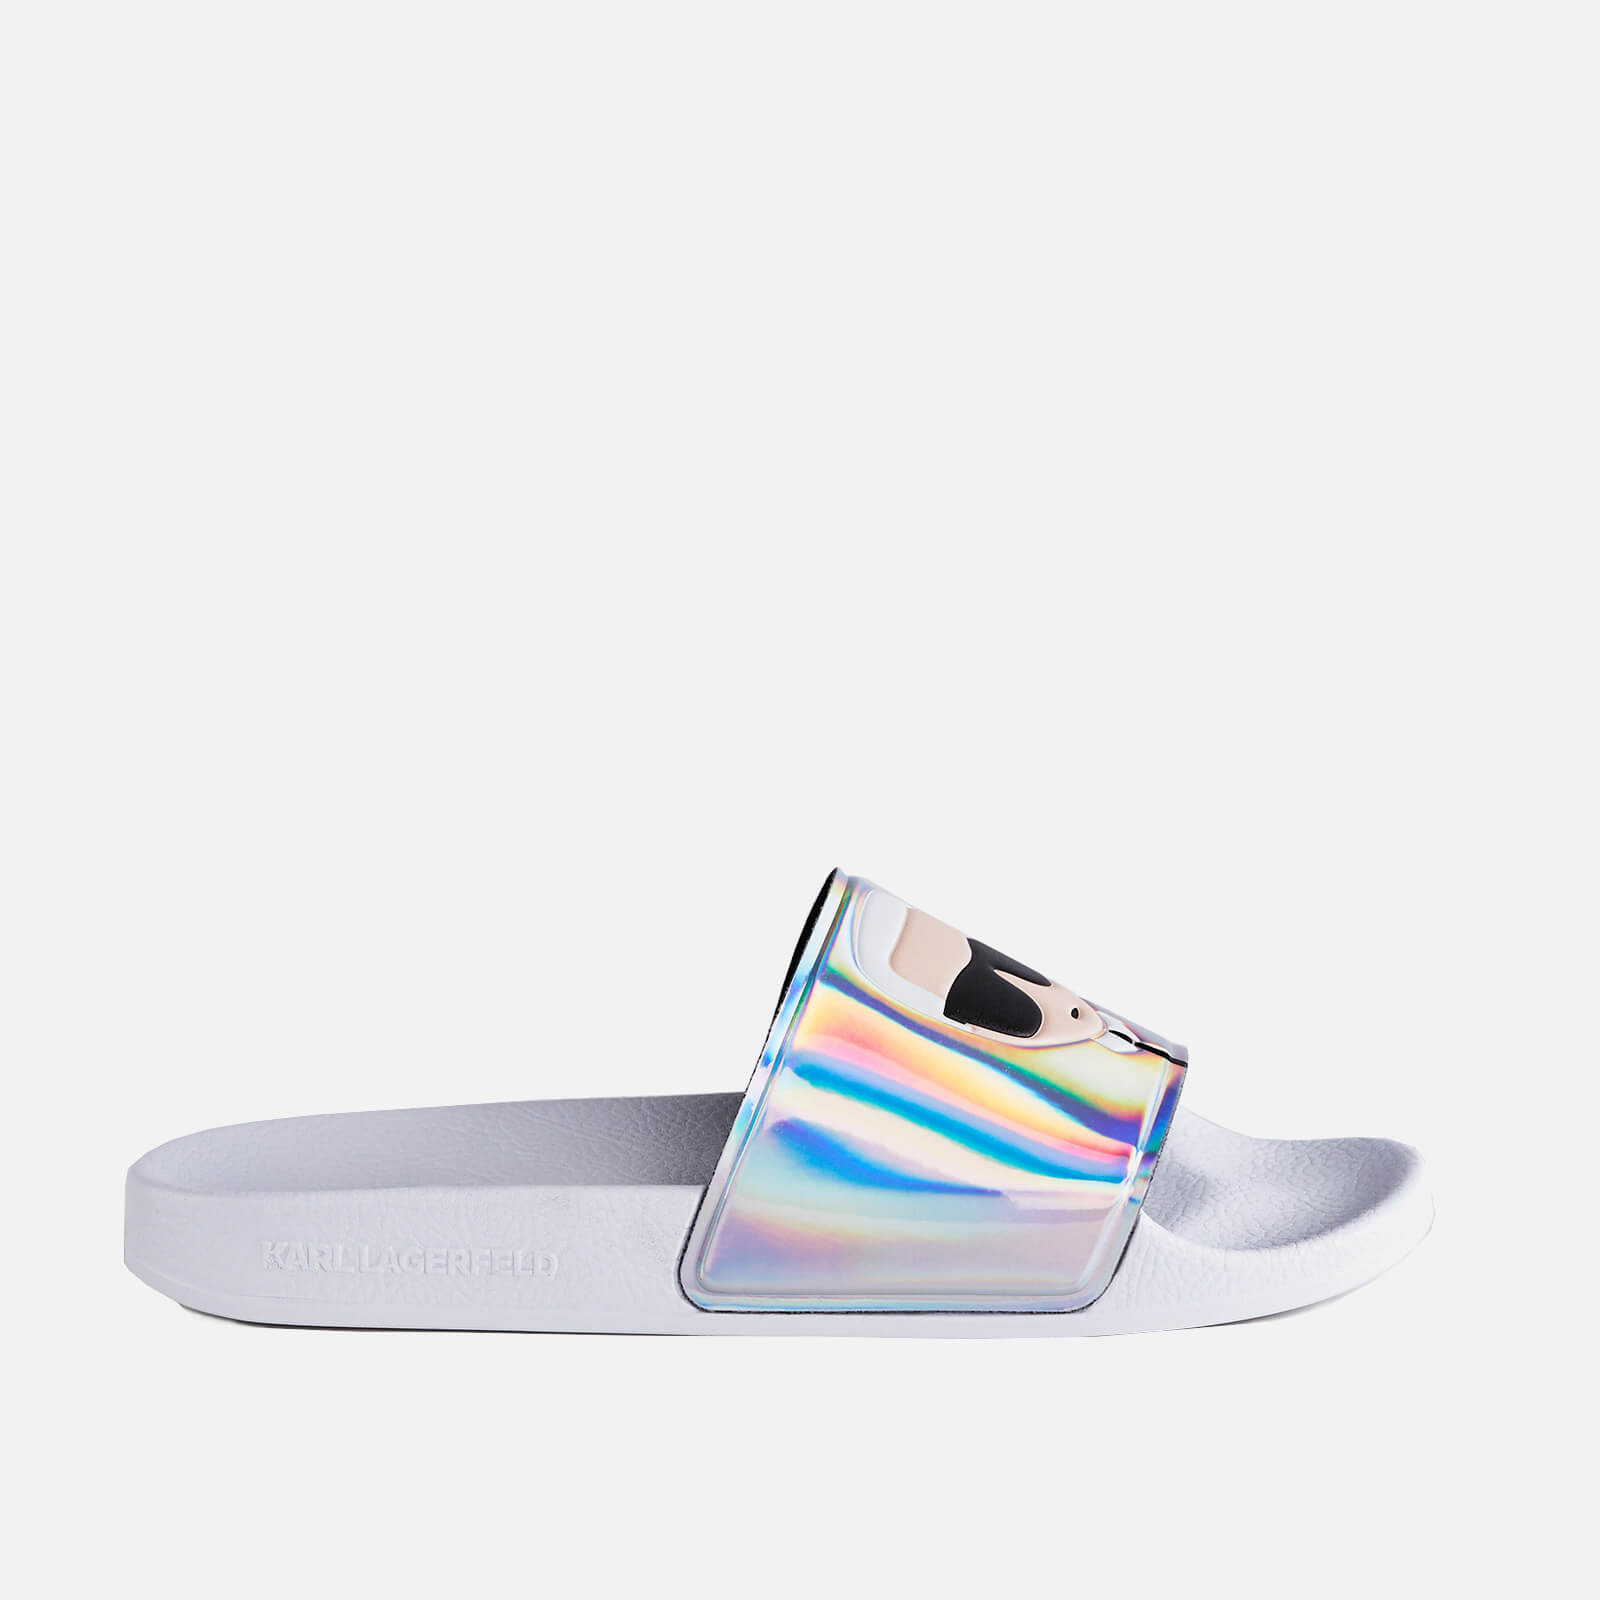 Karl Lagerfeld Womens Kondo Ii Slide Sandals Iridescent Uk 5